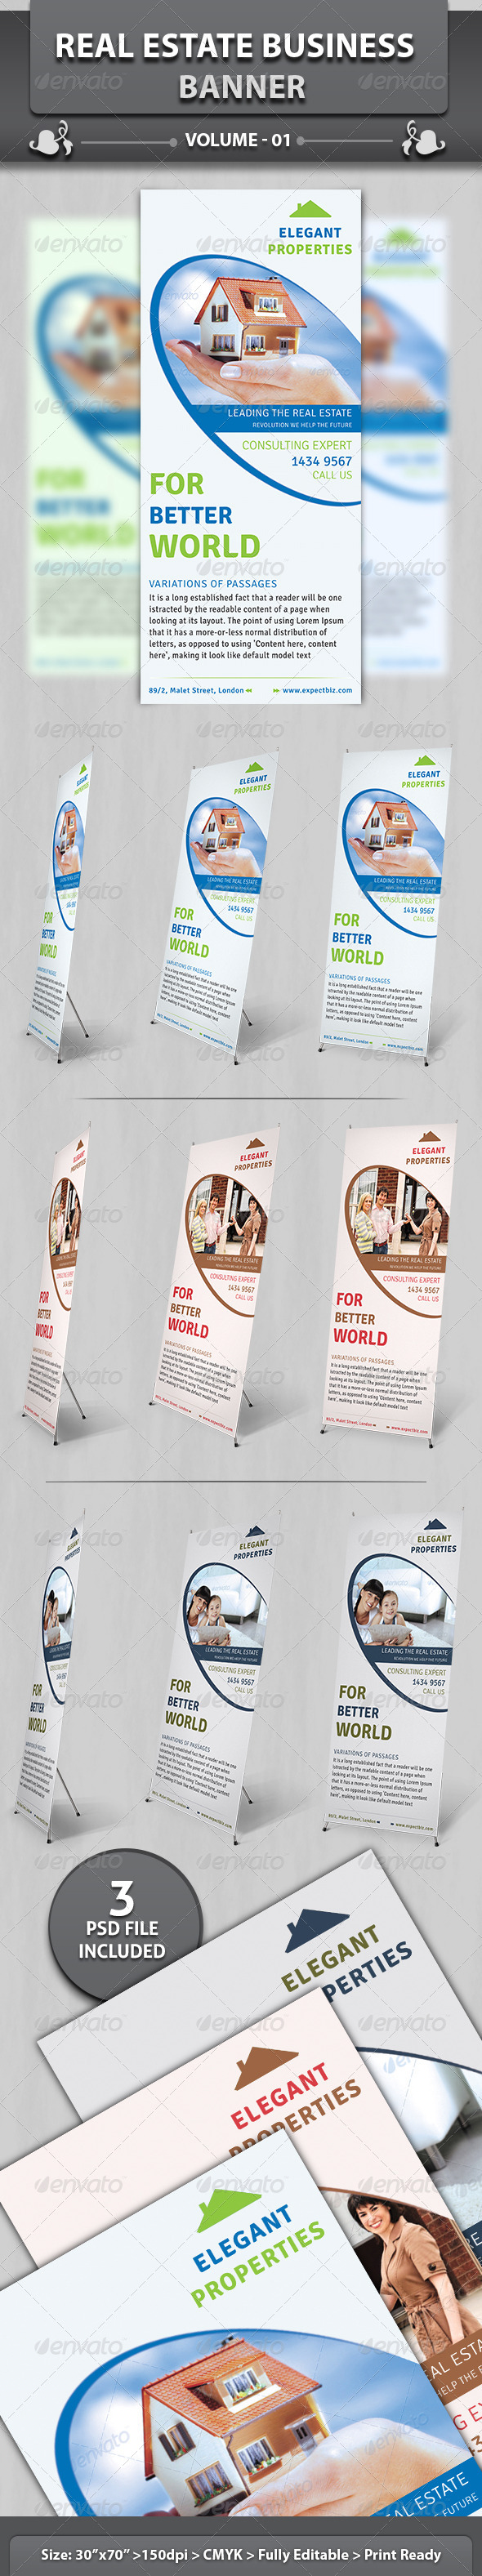 Real Estate Business Banner | Volume 2 - Signage Print Templates